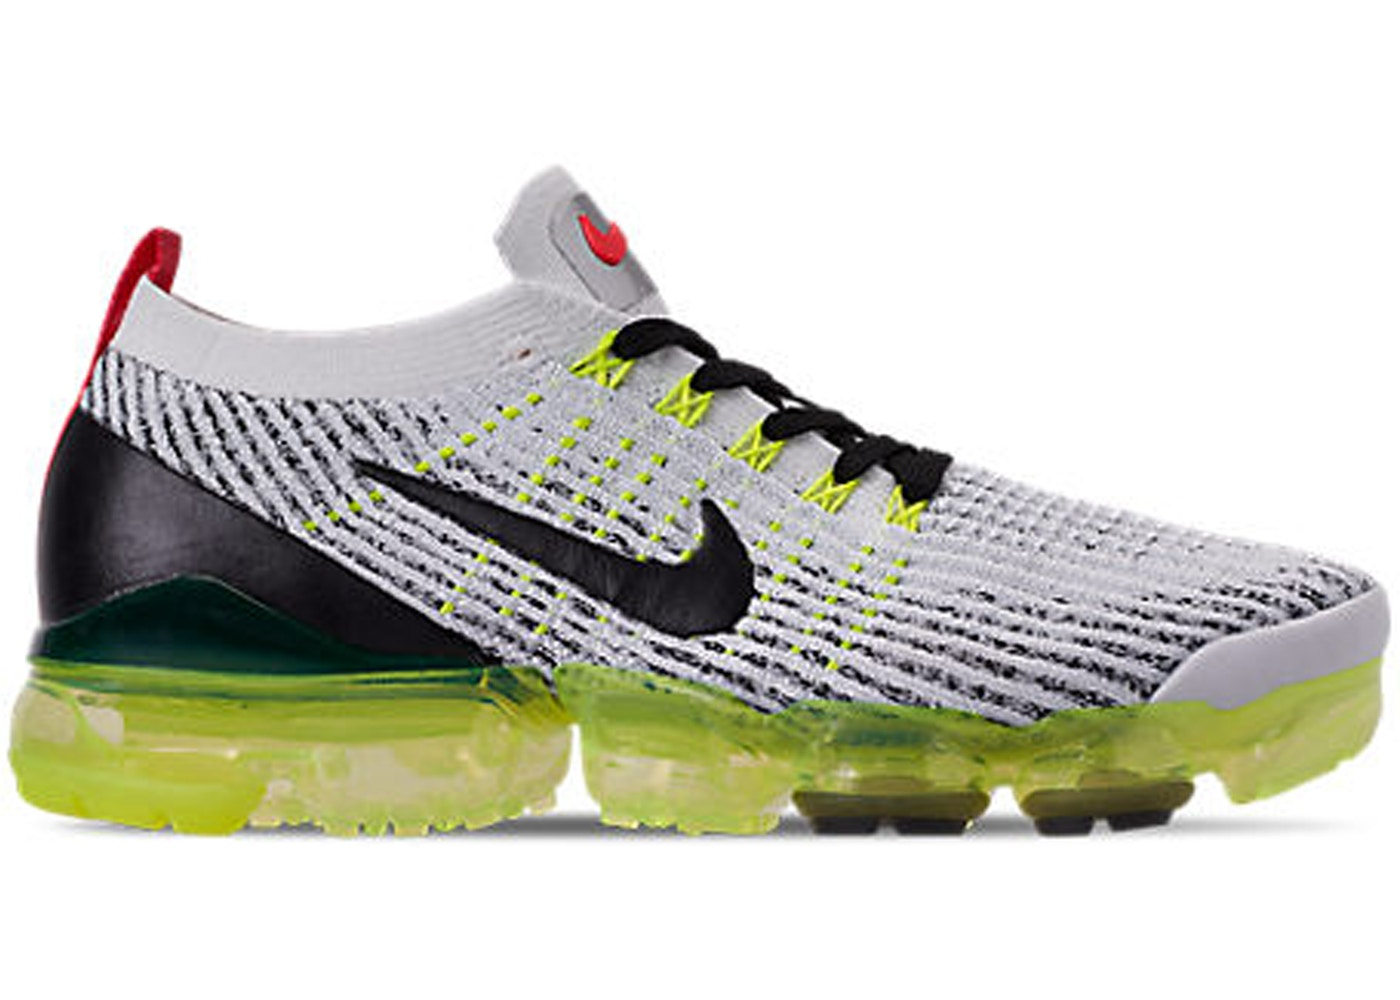 ナイキ メンズ NIKE AIR VAPORMAX FLYKNIT 3 ランニングシューズ White/Black/Volt/Bright Crimson/Metallic Silver